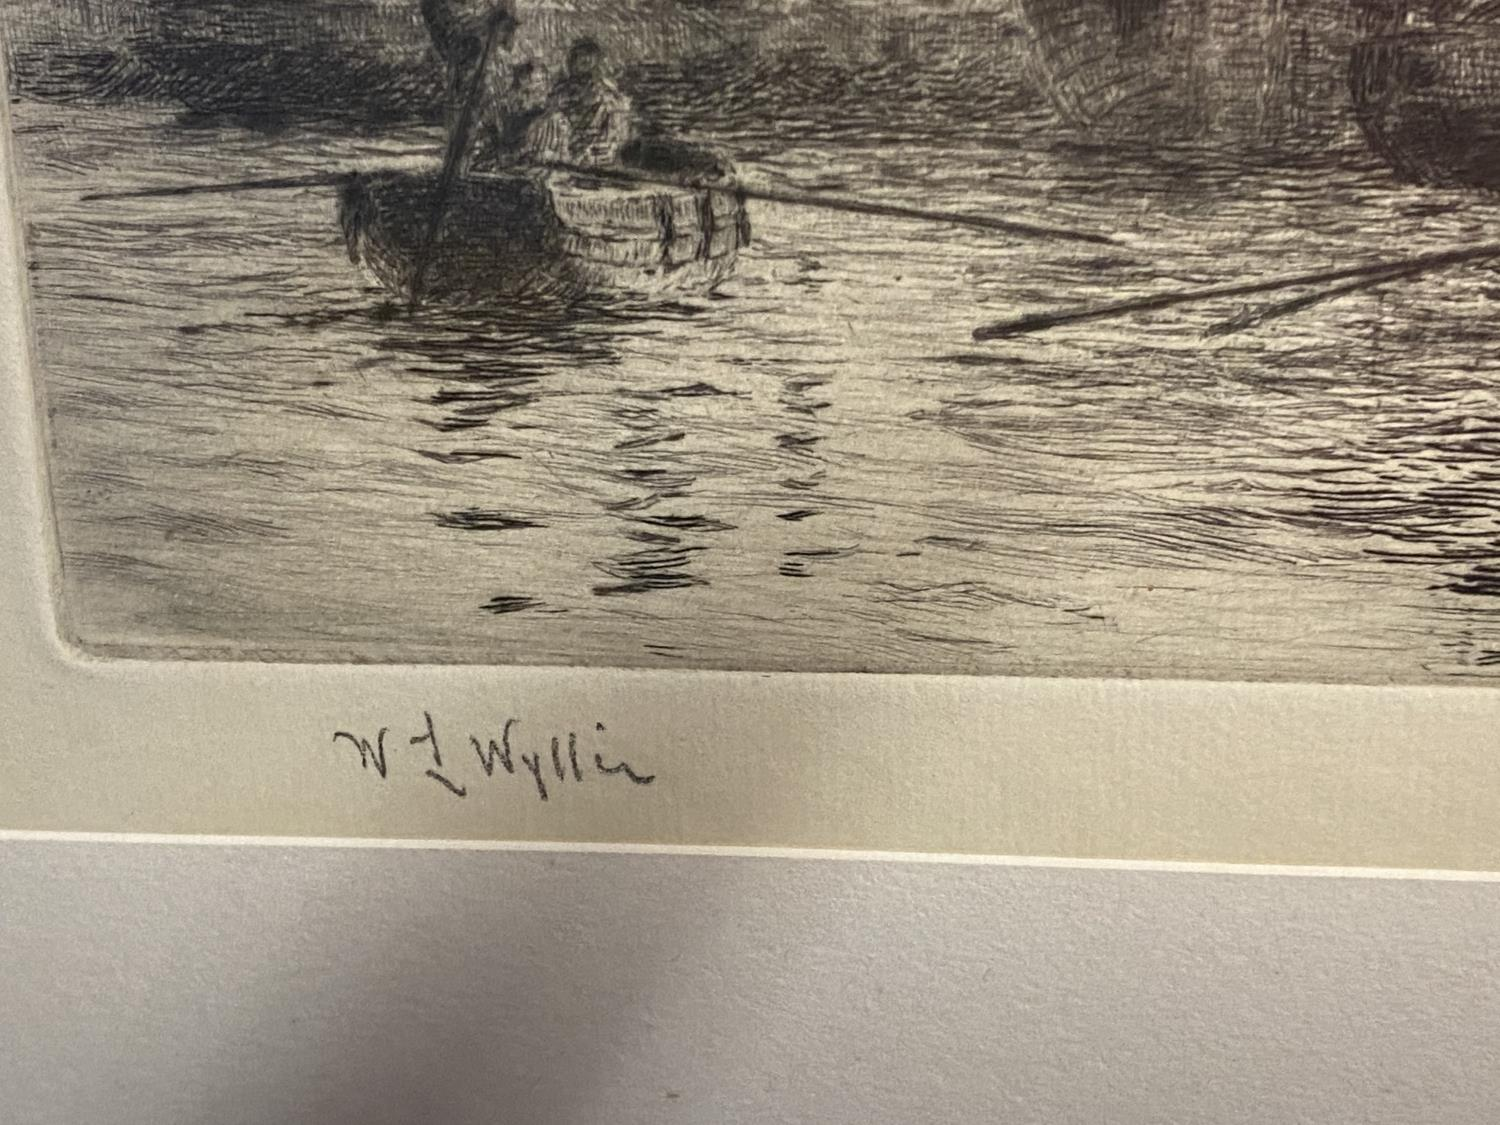 William Wylie, (1851-1931-), etching, Man of War with tugs in harbour, signed in pencil lower left - Image 9 of 12